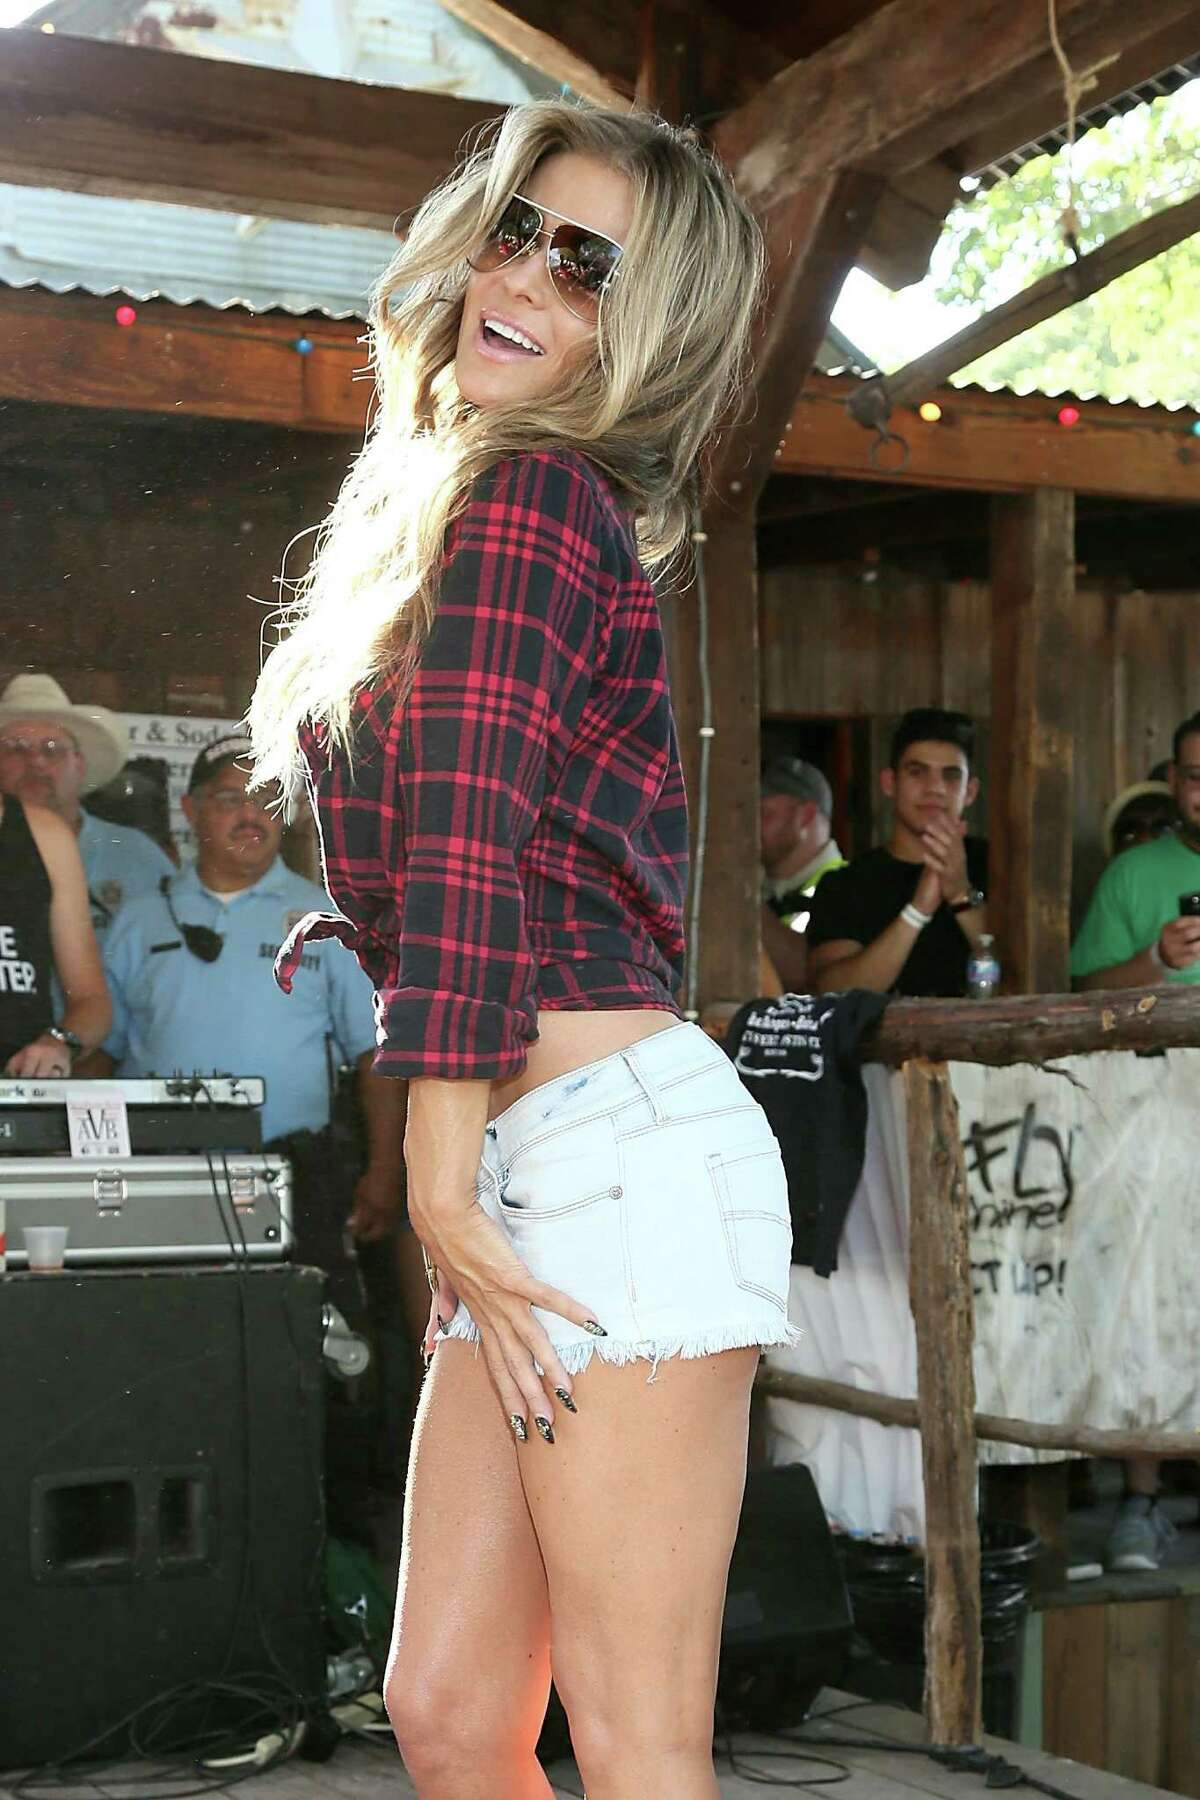 Carmen Electra was inducted into Bikinis, Texas' hall of fame Saturday in Bankersmith.